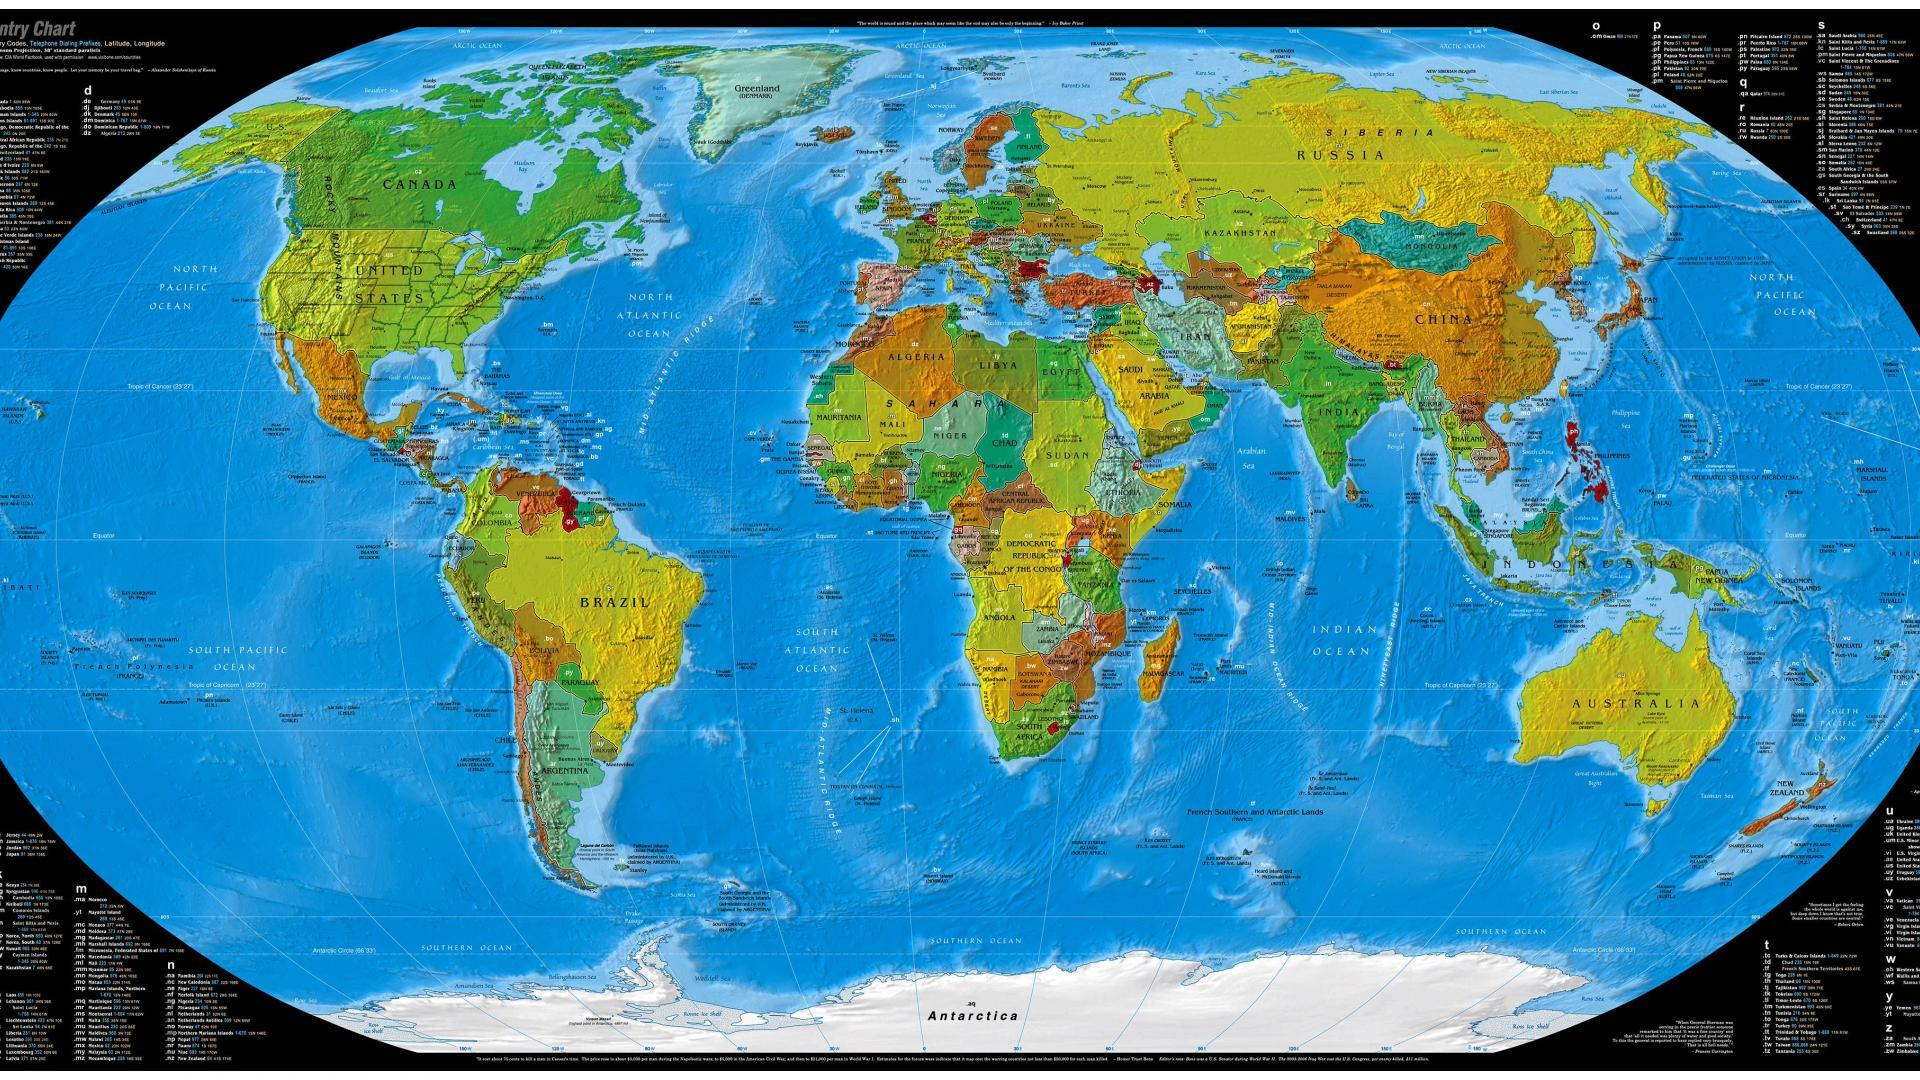 World Map Desktop 12 5 Kaartenstemp Nl